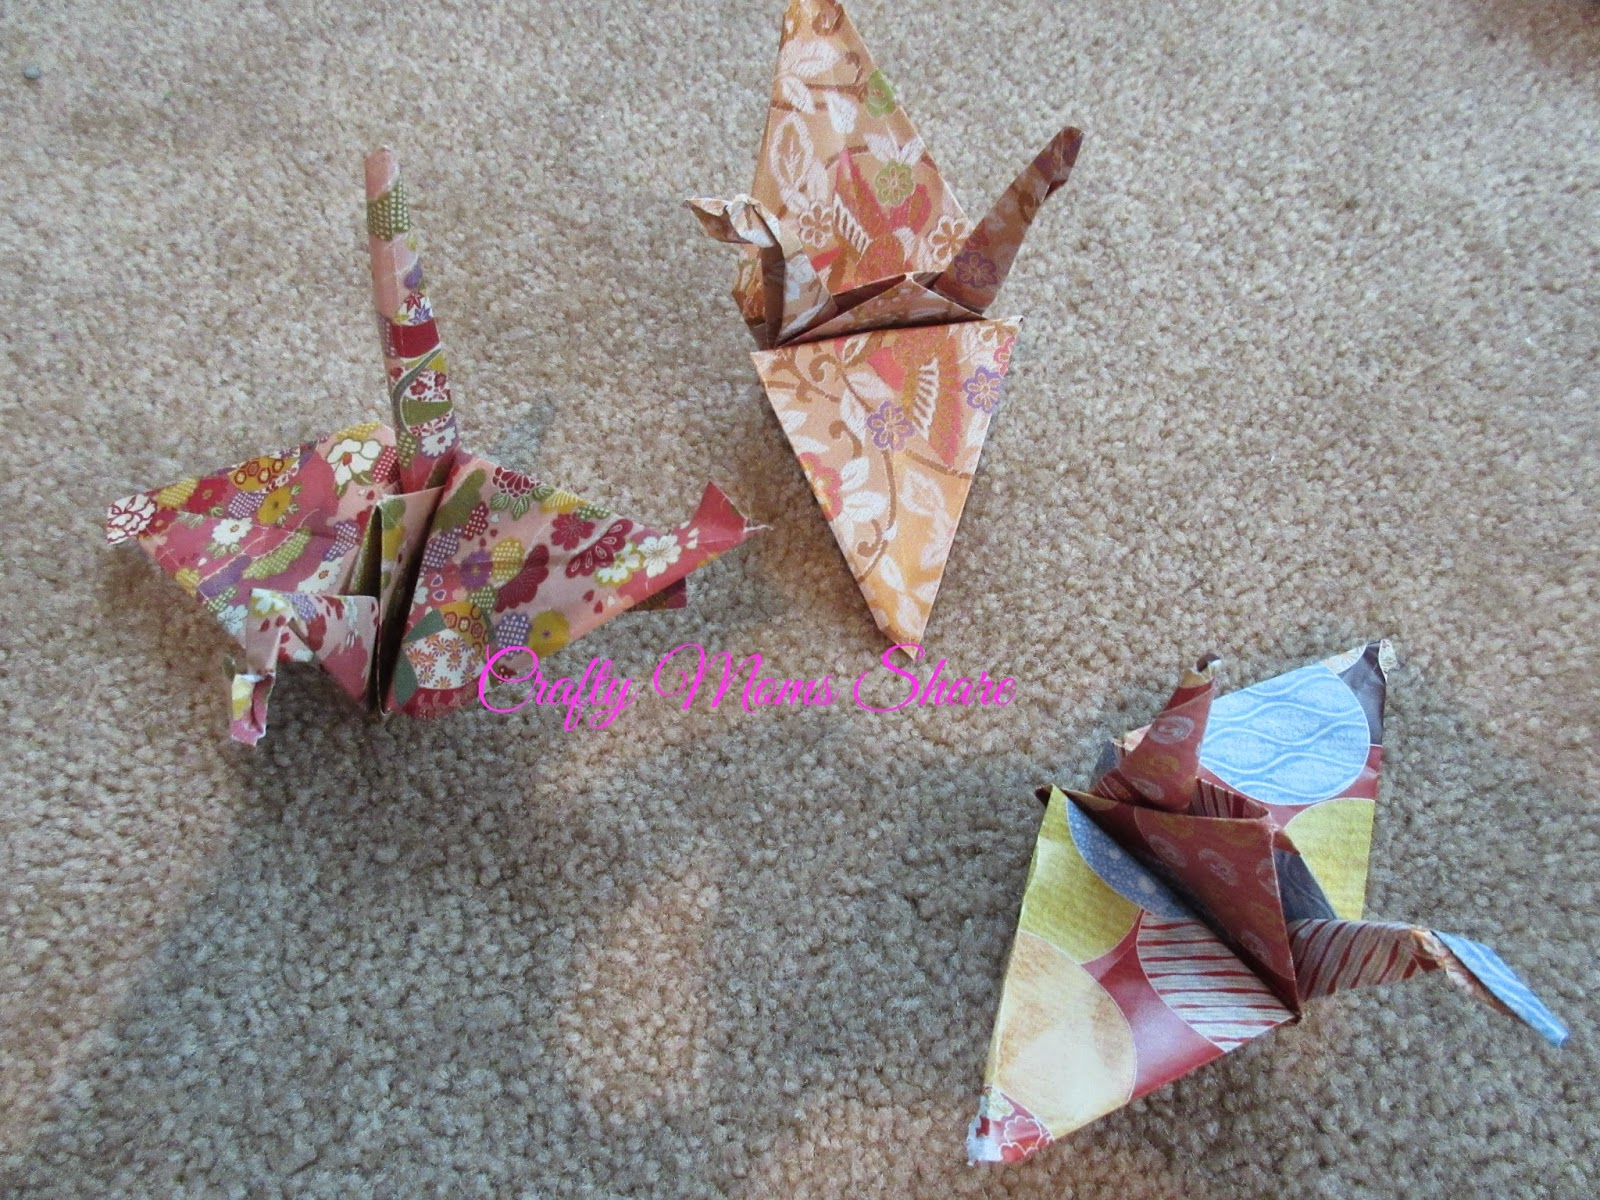 Crafty moms share exploring origami global learning for kids each of the animals have special meaning to the japanese cranes represent long life happiness good luck and peace source a legend says that anyone who jeuxipadfo Image collections